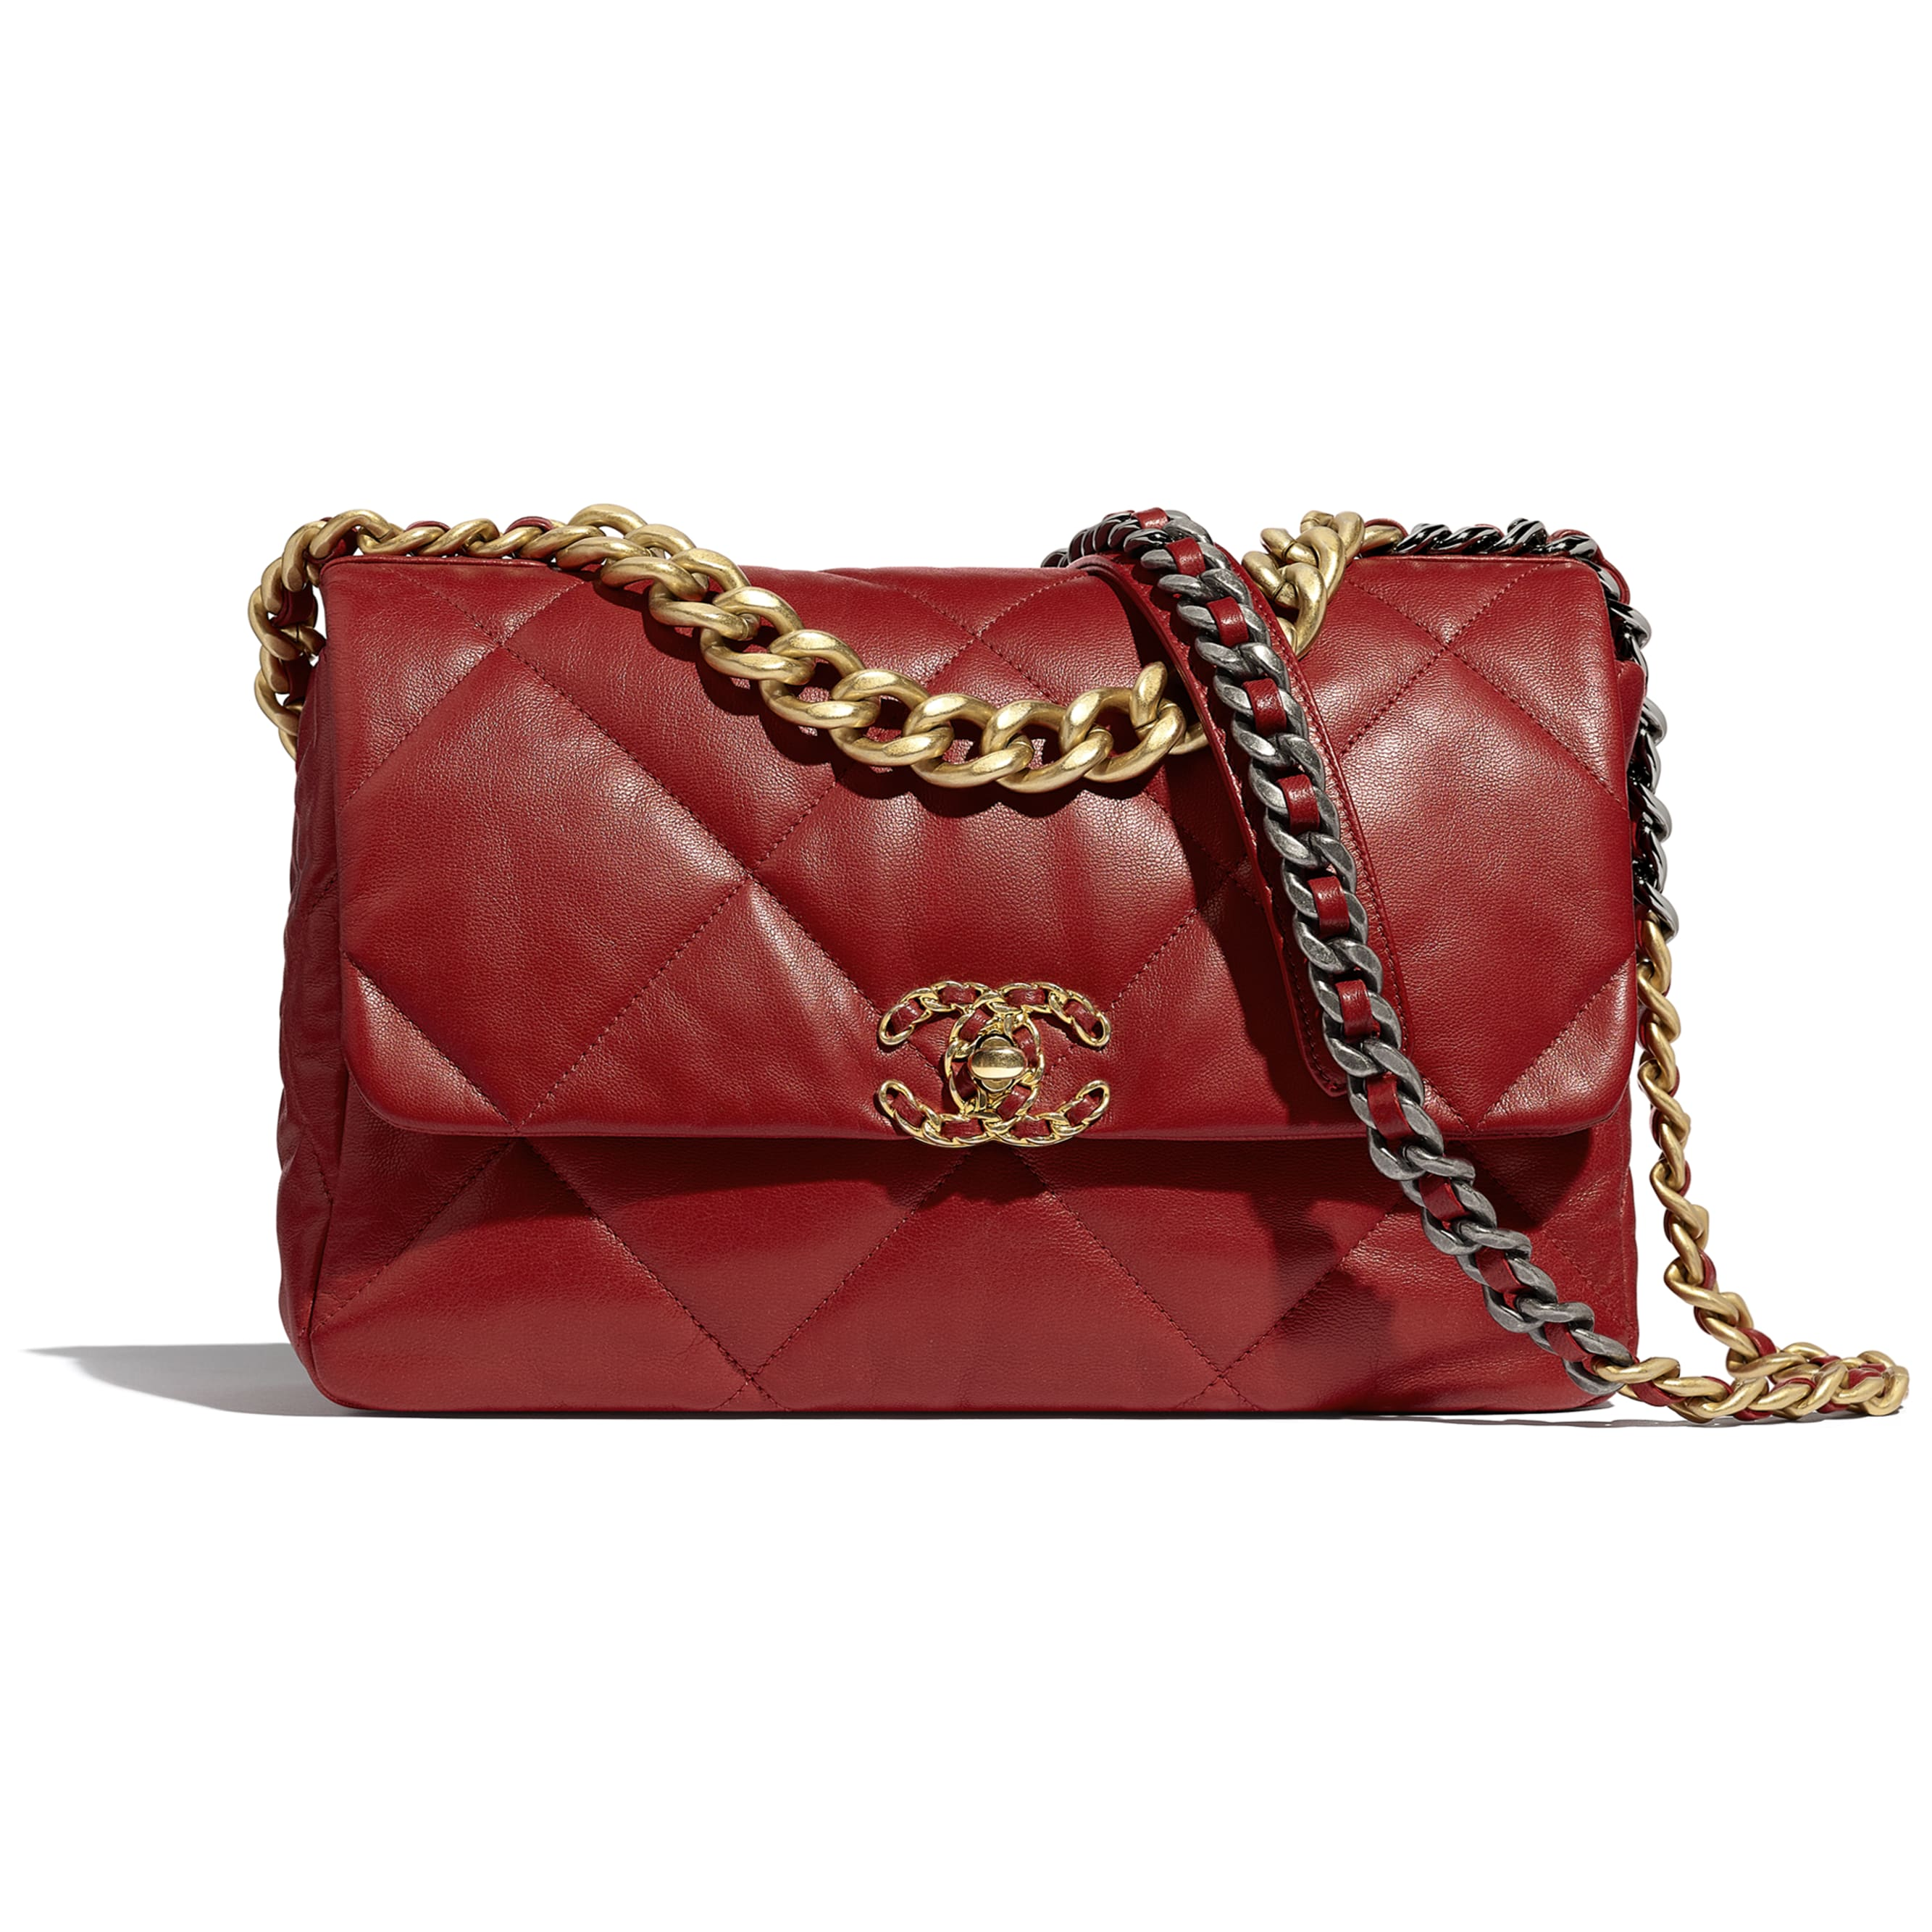 CHANEL 19 Large Flap Bag - Red - Goatskin, Gold-Tone, Silver-Tone & Ruthenium-Finish Metal - Default view - see standard sized version